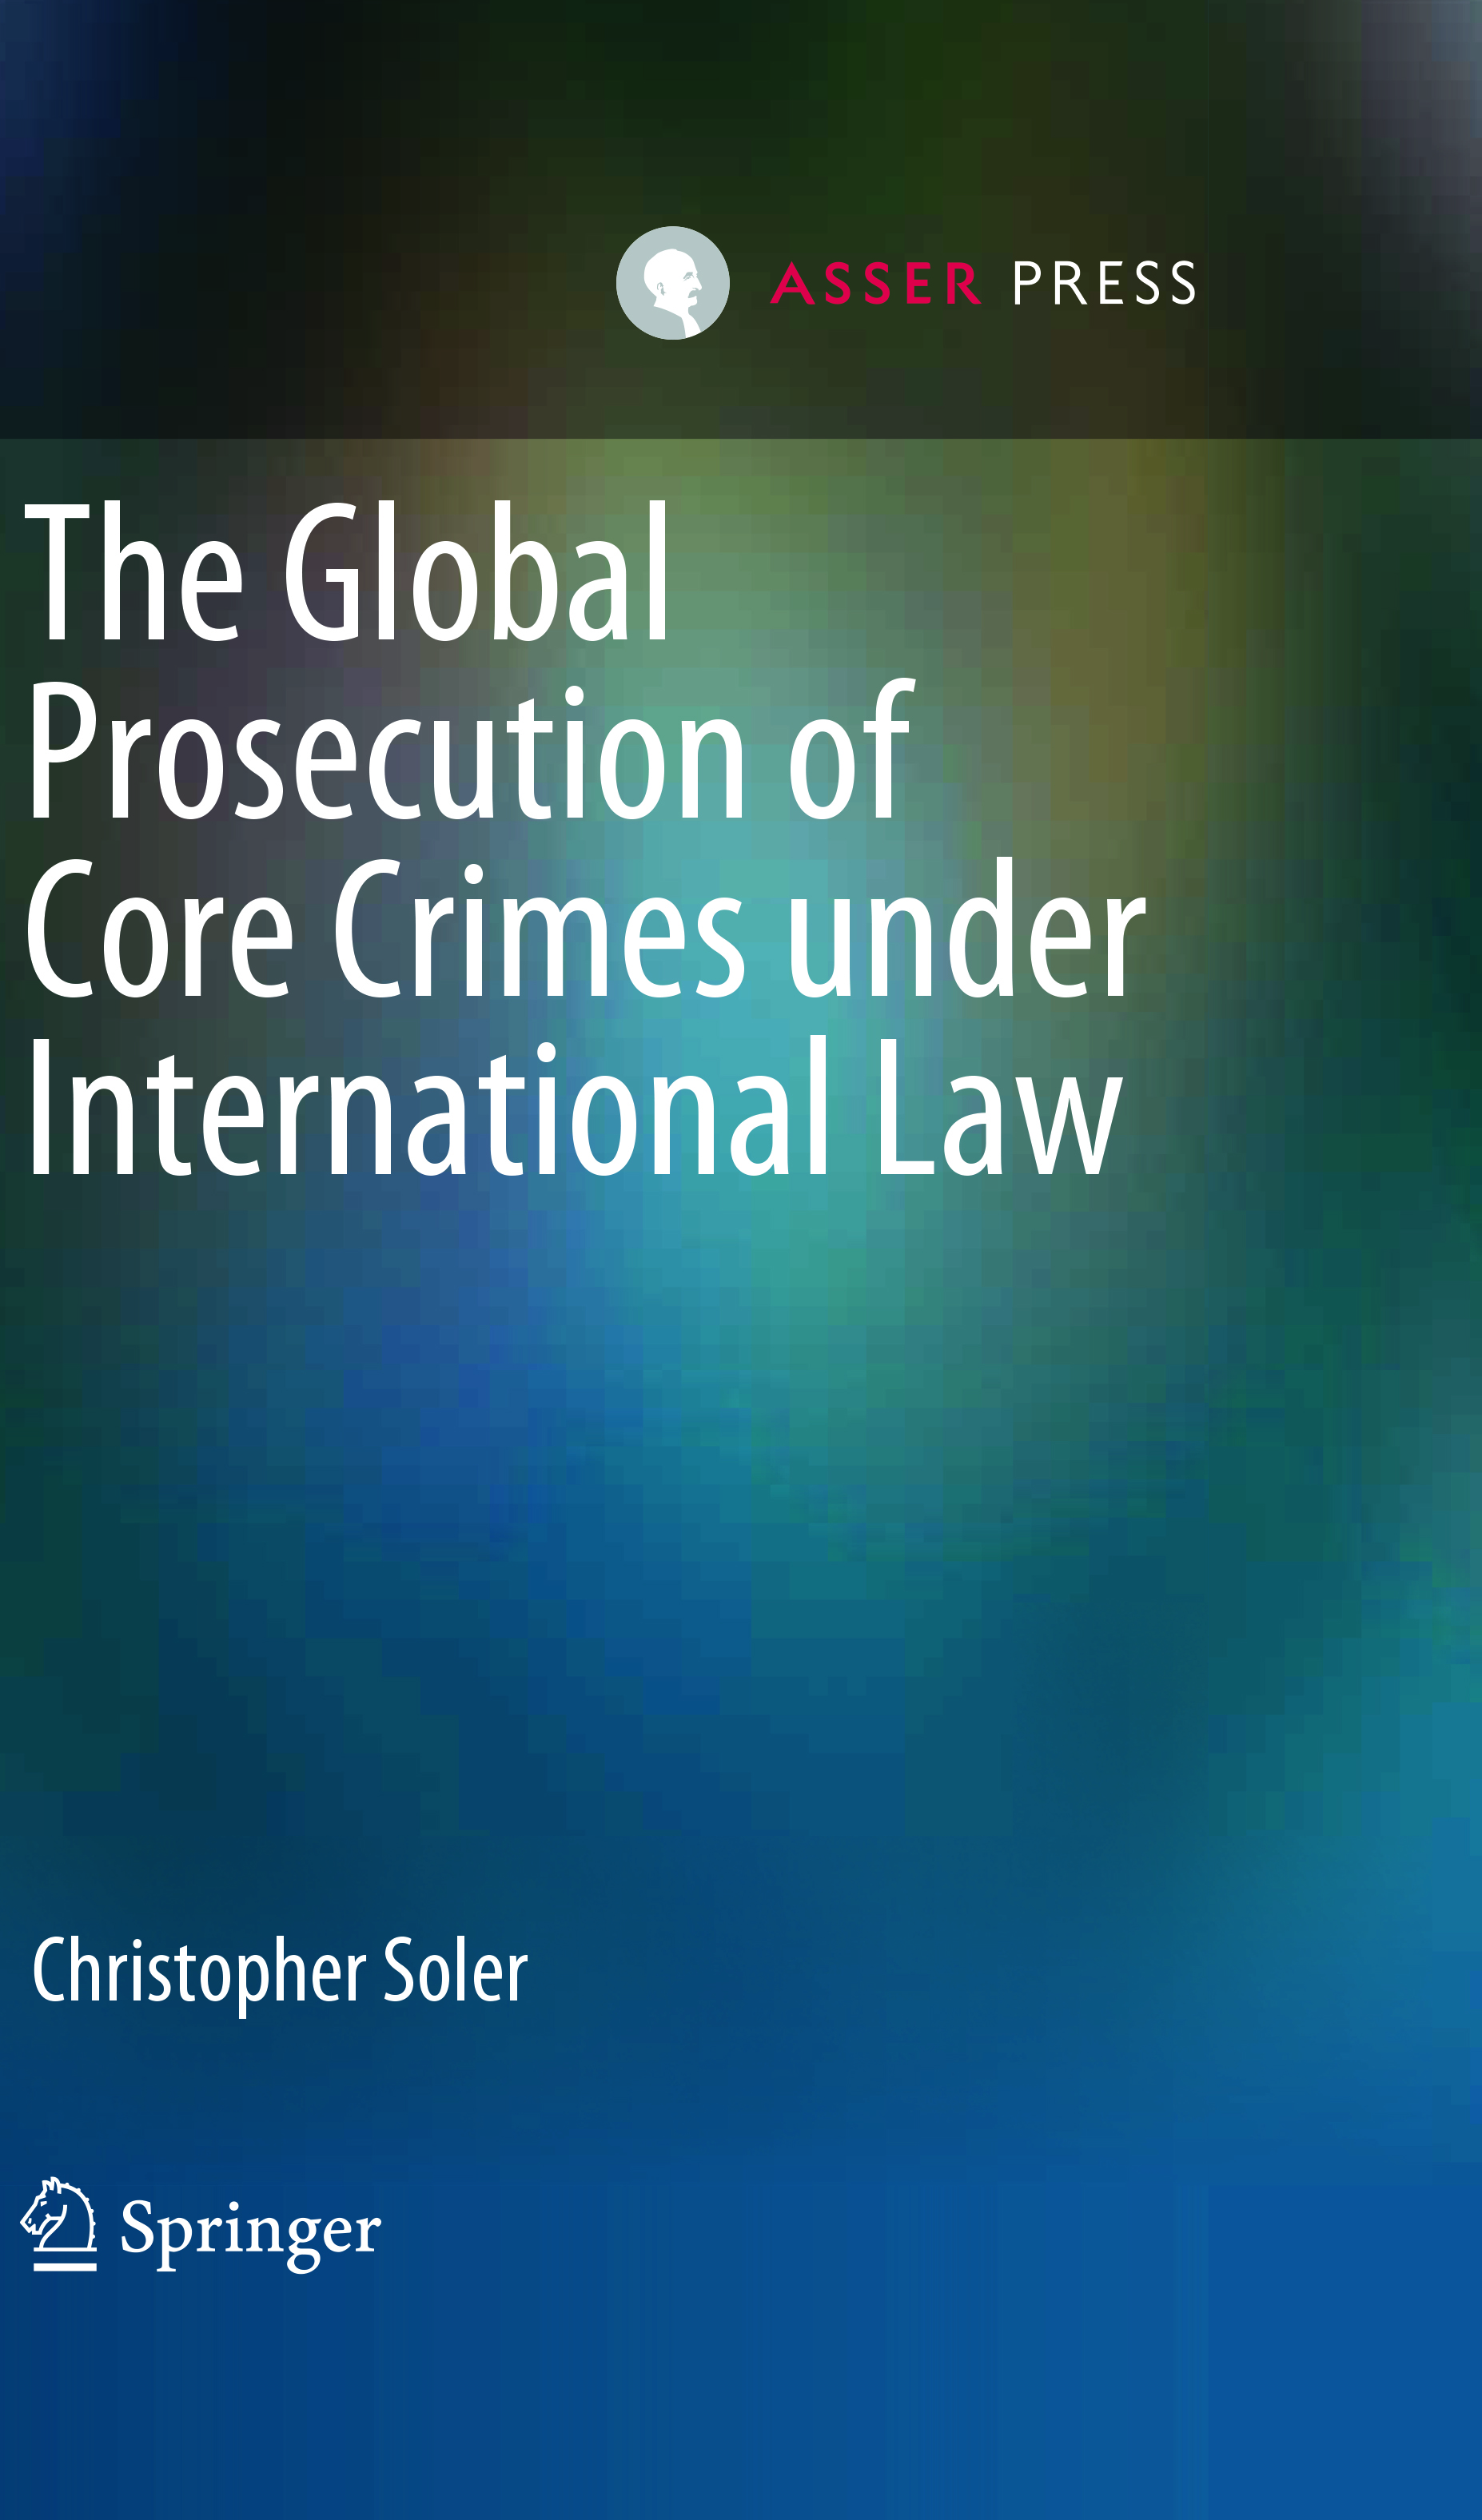 The Global Prosecution of Core Crimes under International Law